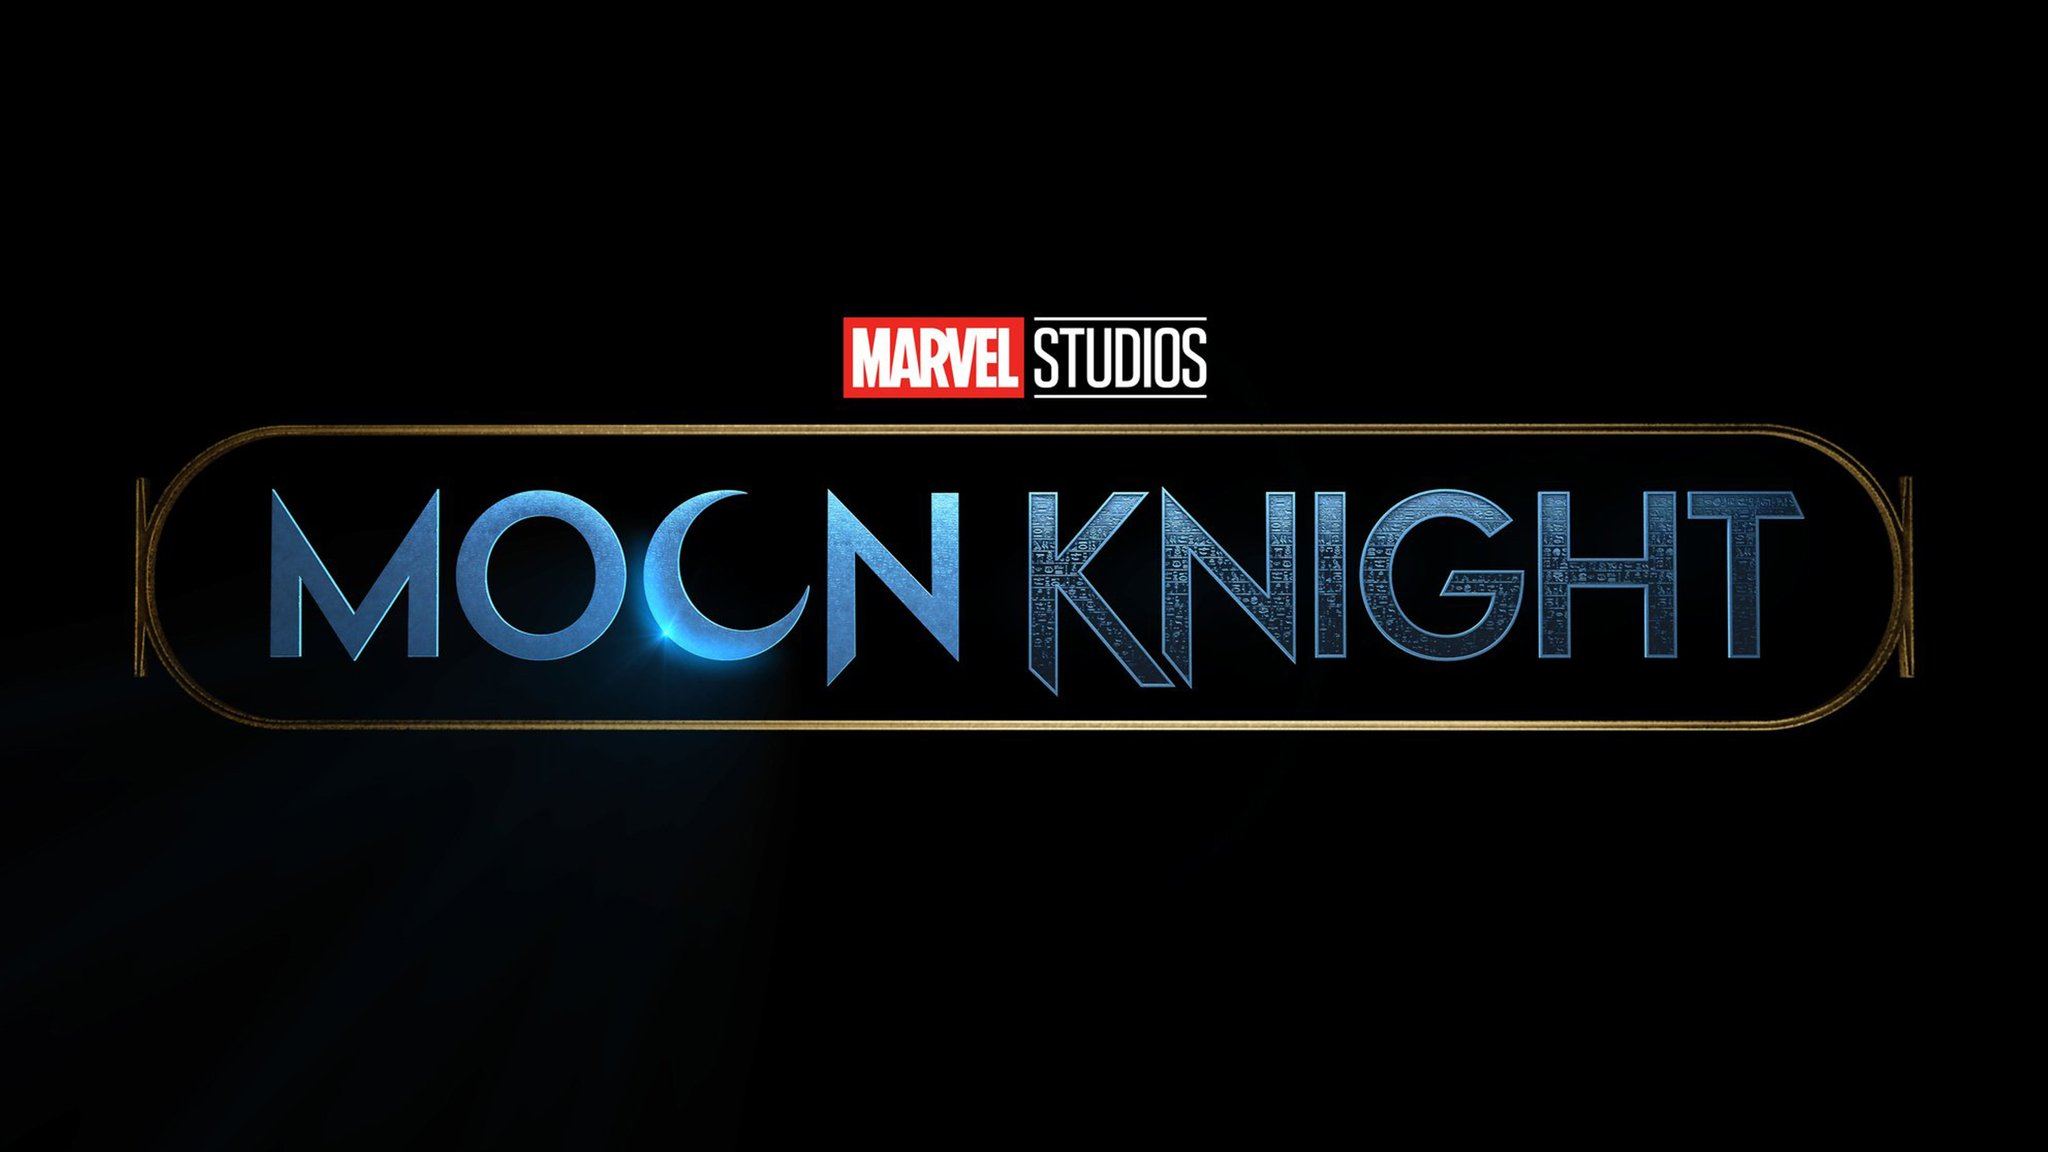 Moon Knight Release Date and Trailer